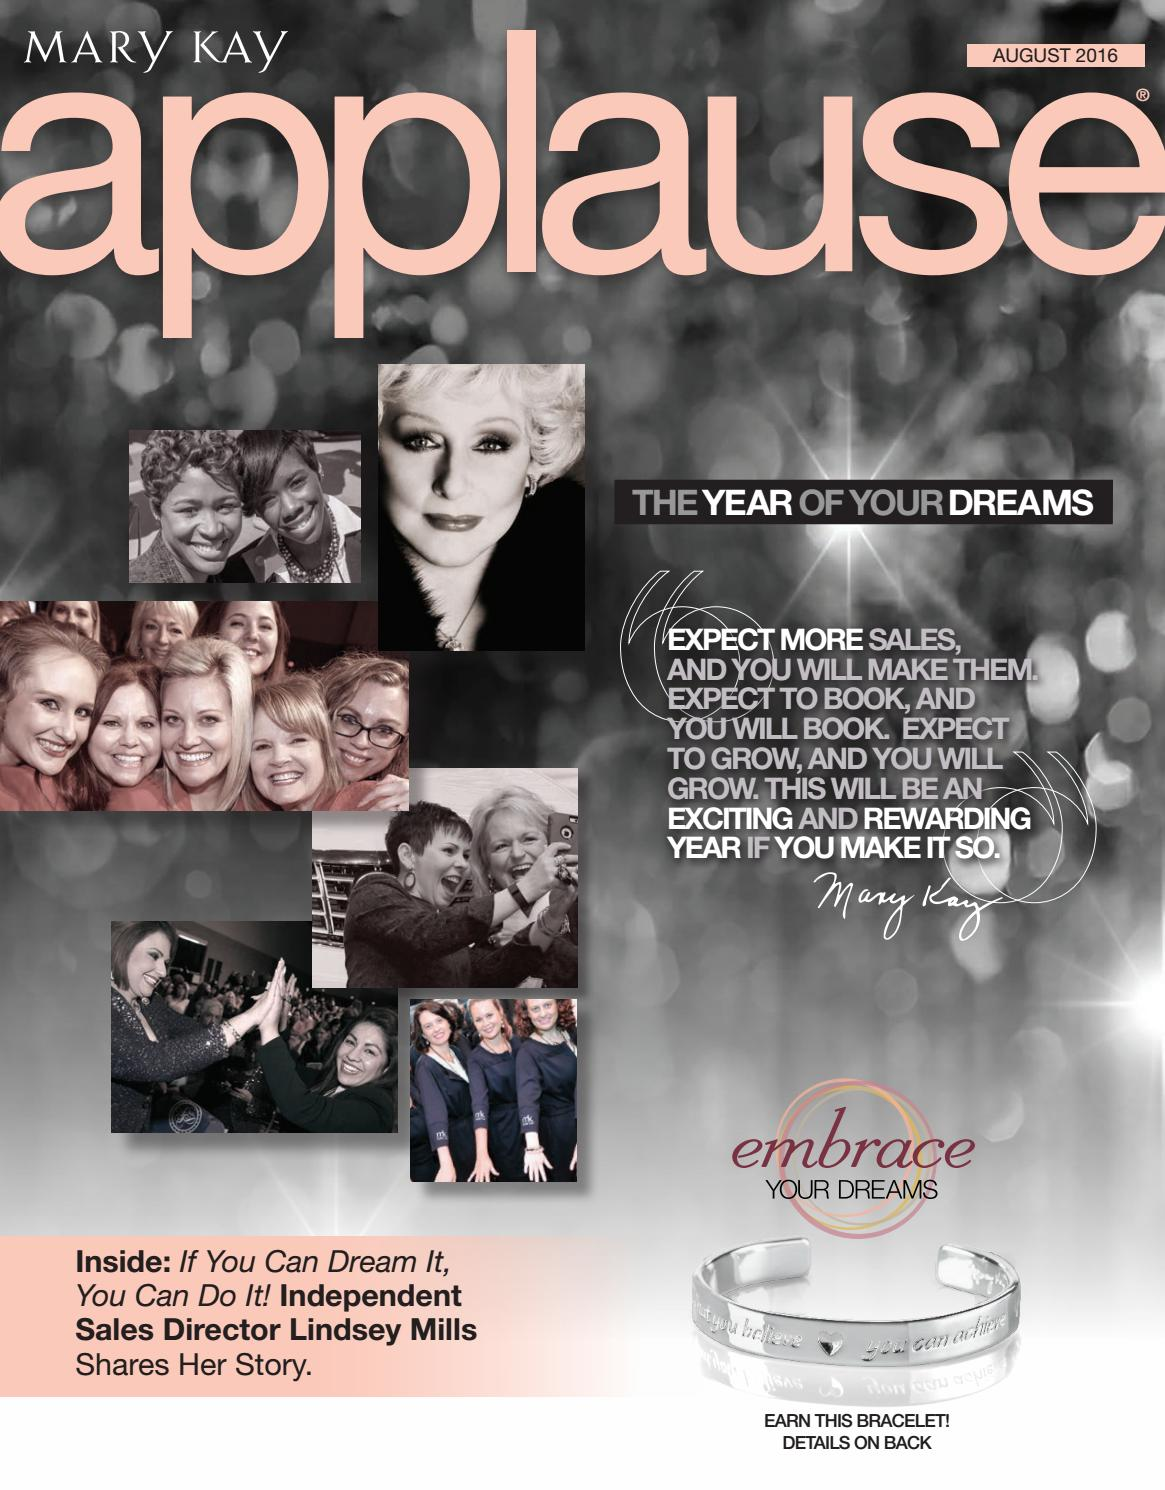 Mary kay online agreement on intouch - Mary Kay Online Agreement On Intouch 26